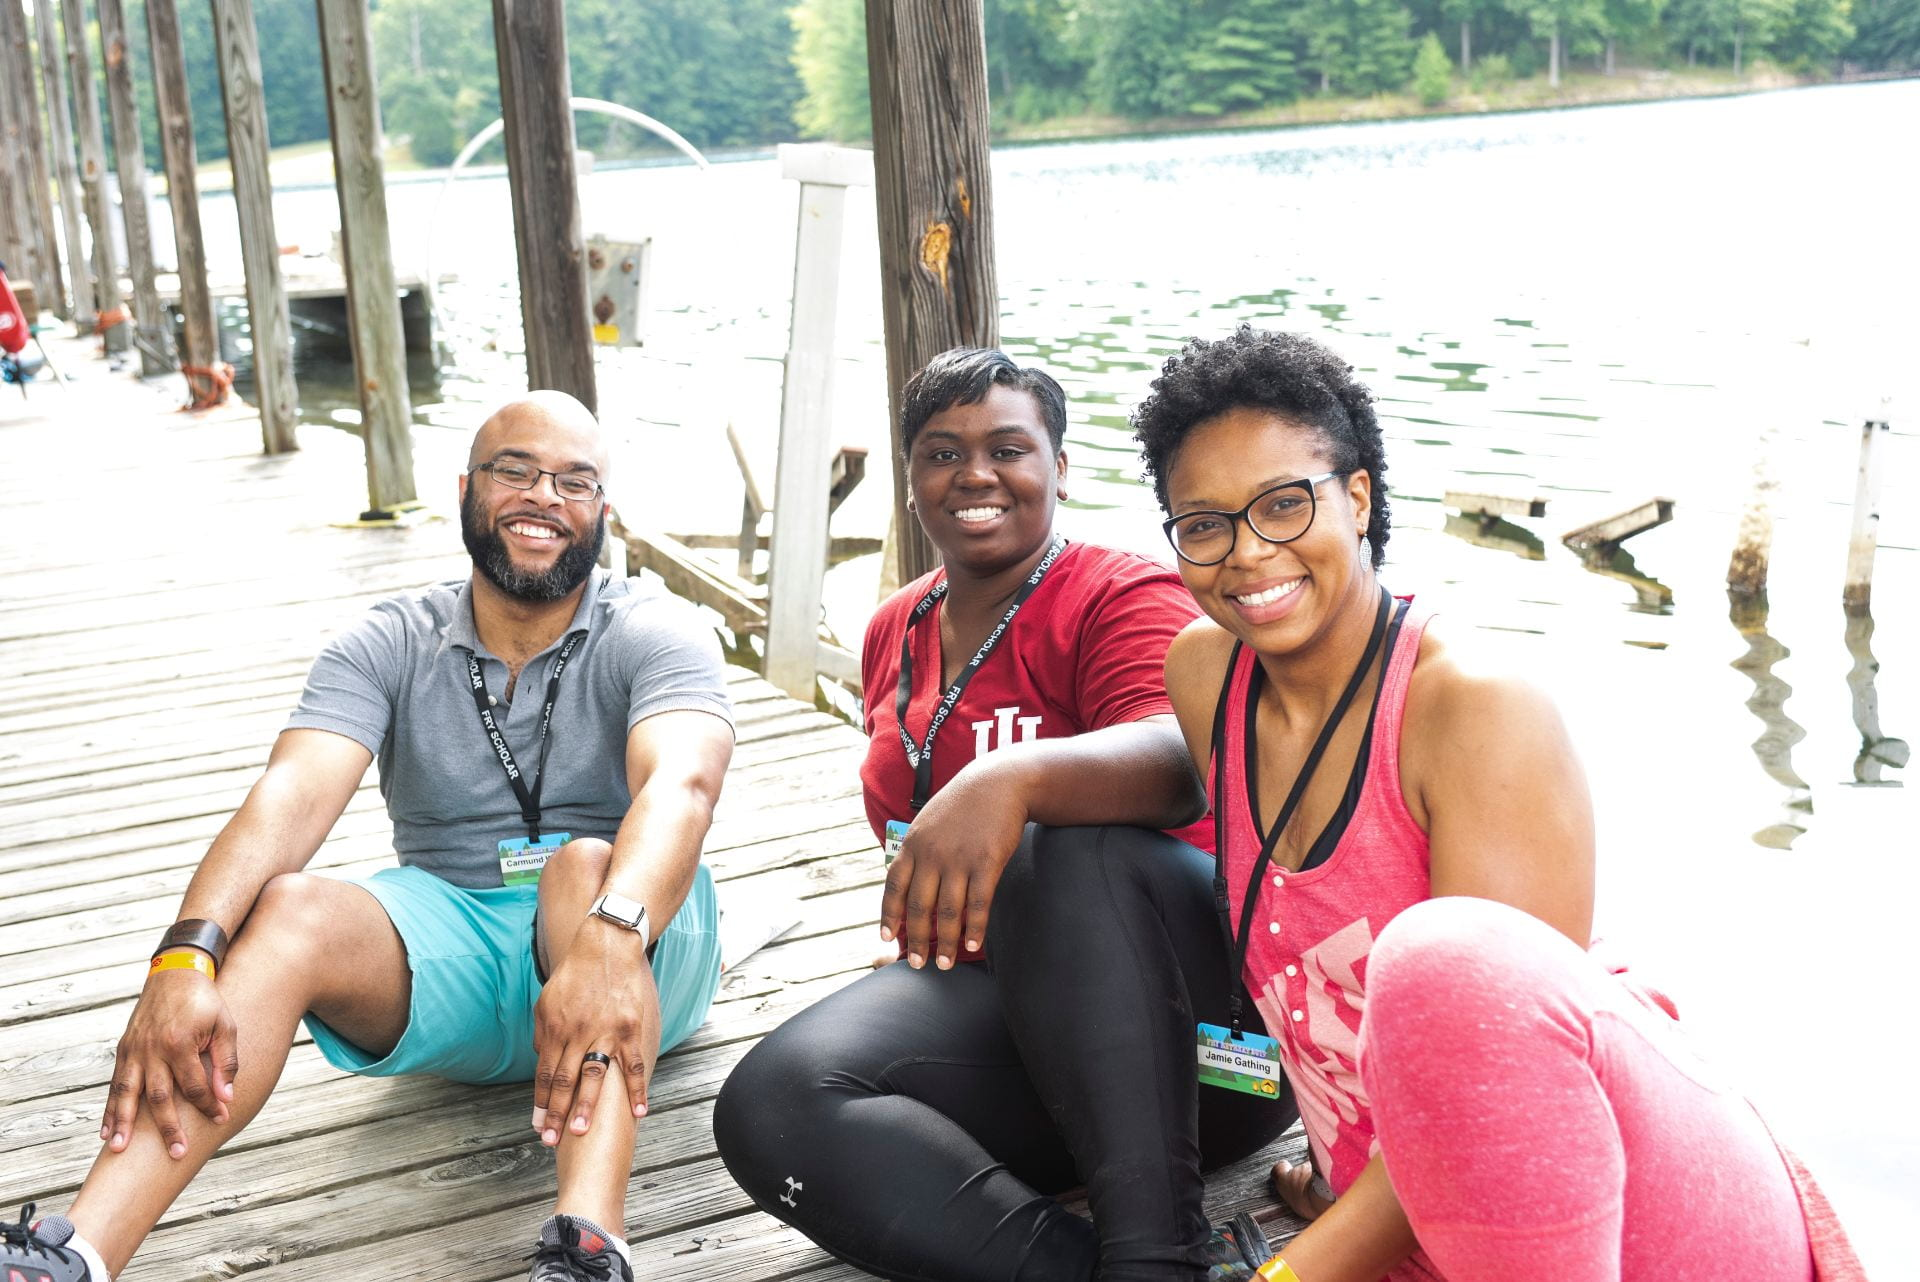 KODI advisors Carmund White, Maqubè Reese, and Jamie Gathing sit on a dock with water in the background.